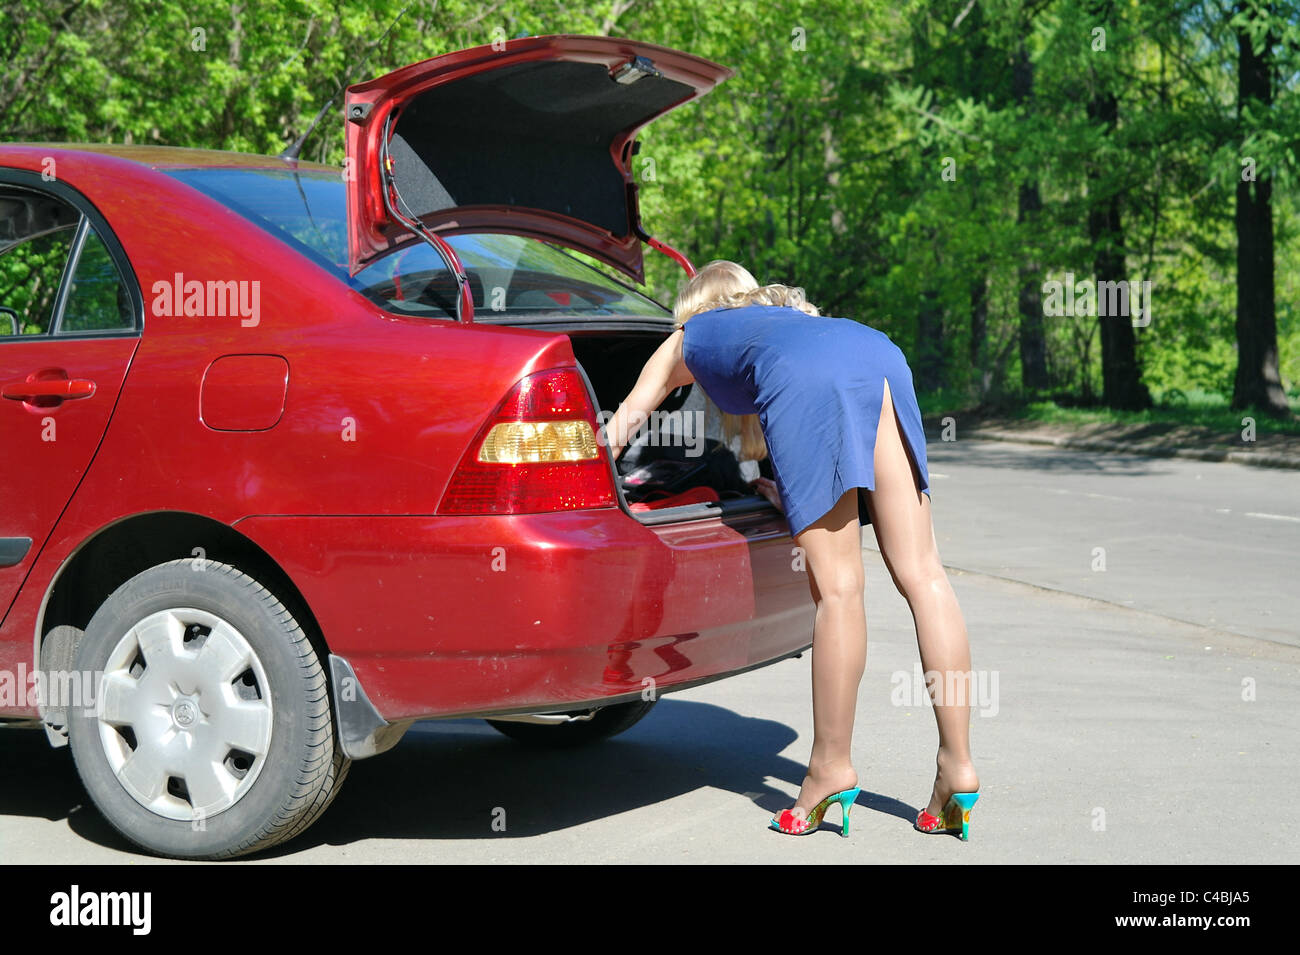 The girl the blonde searches for tools in a luggage carrier of the red car in the summer, Moscow - Stock Image